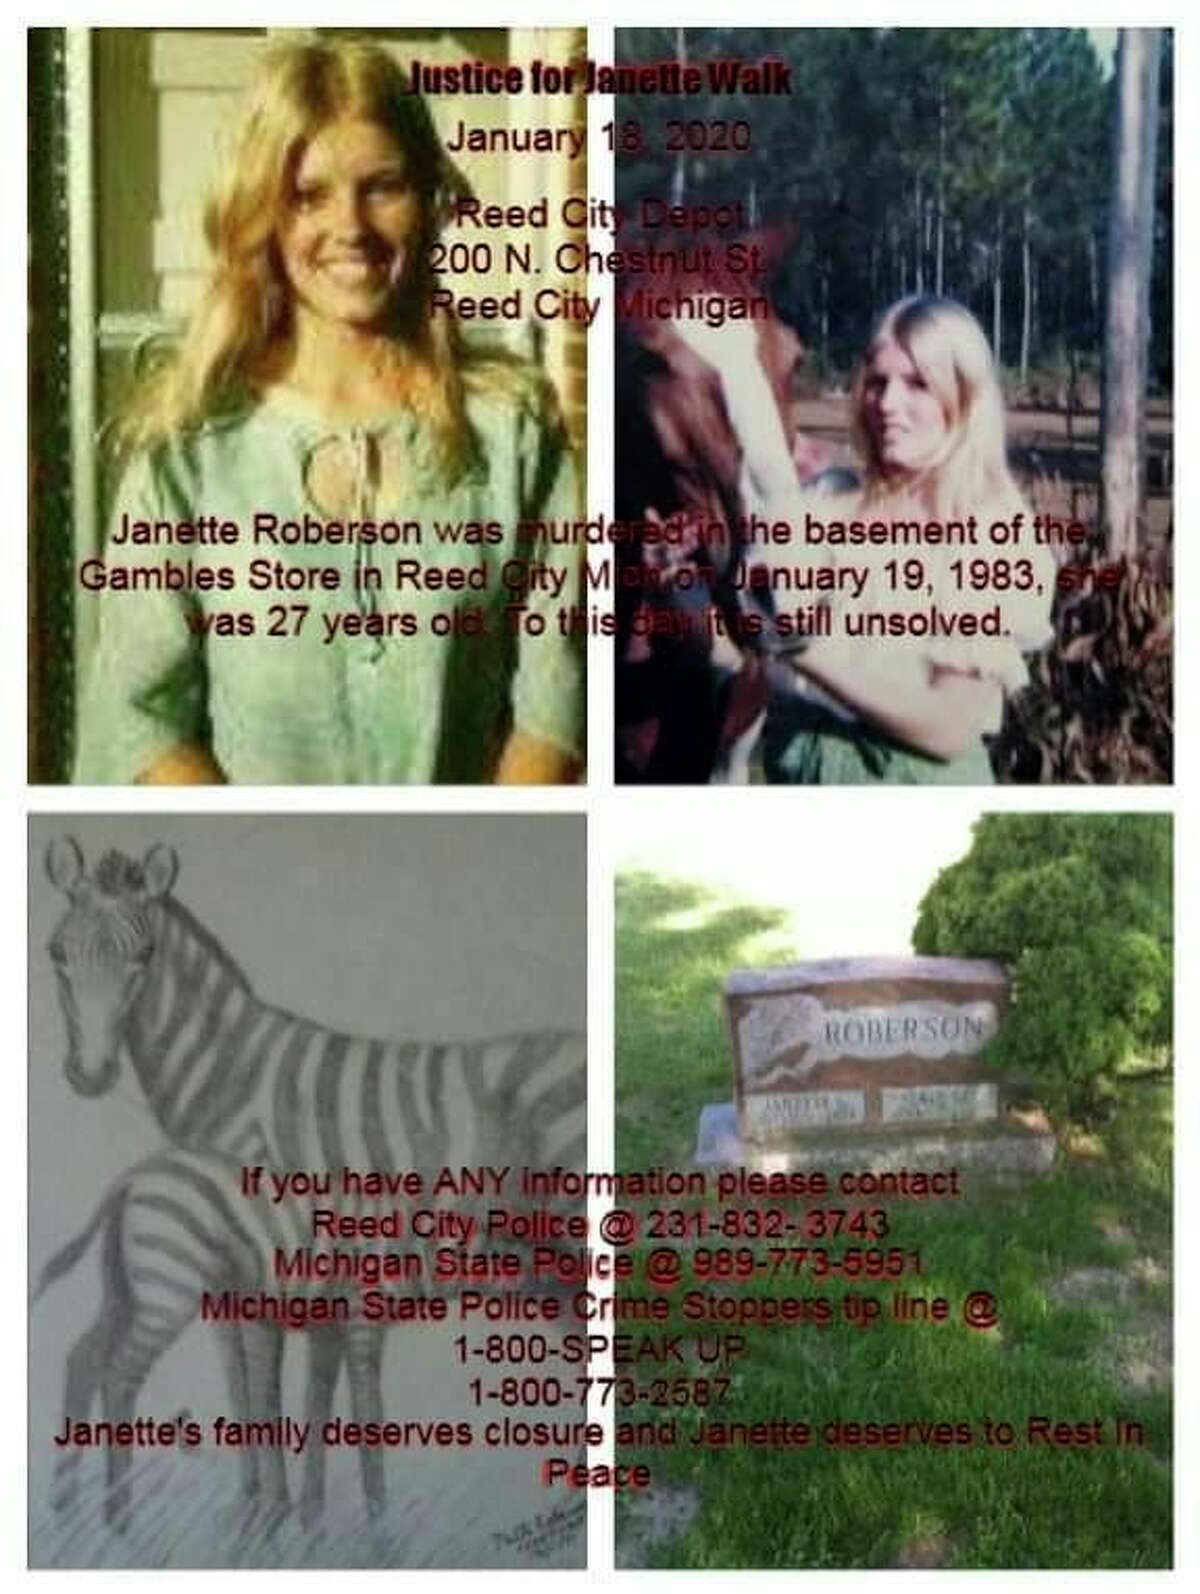 The annual Justice for Janette walk in Reed City will take place Saturday, Jan. 18, from 12-4 p.m. The walk will begin at the Reed City Depot and end at Reed City Hardware, formerly Gamble's, downtown. The purpose of the walk is to bring attention to the cold case and possibly generate new leads that will help solve the case. (Submitted photo)